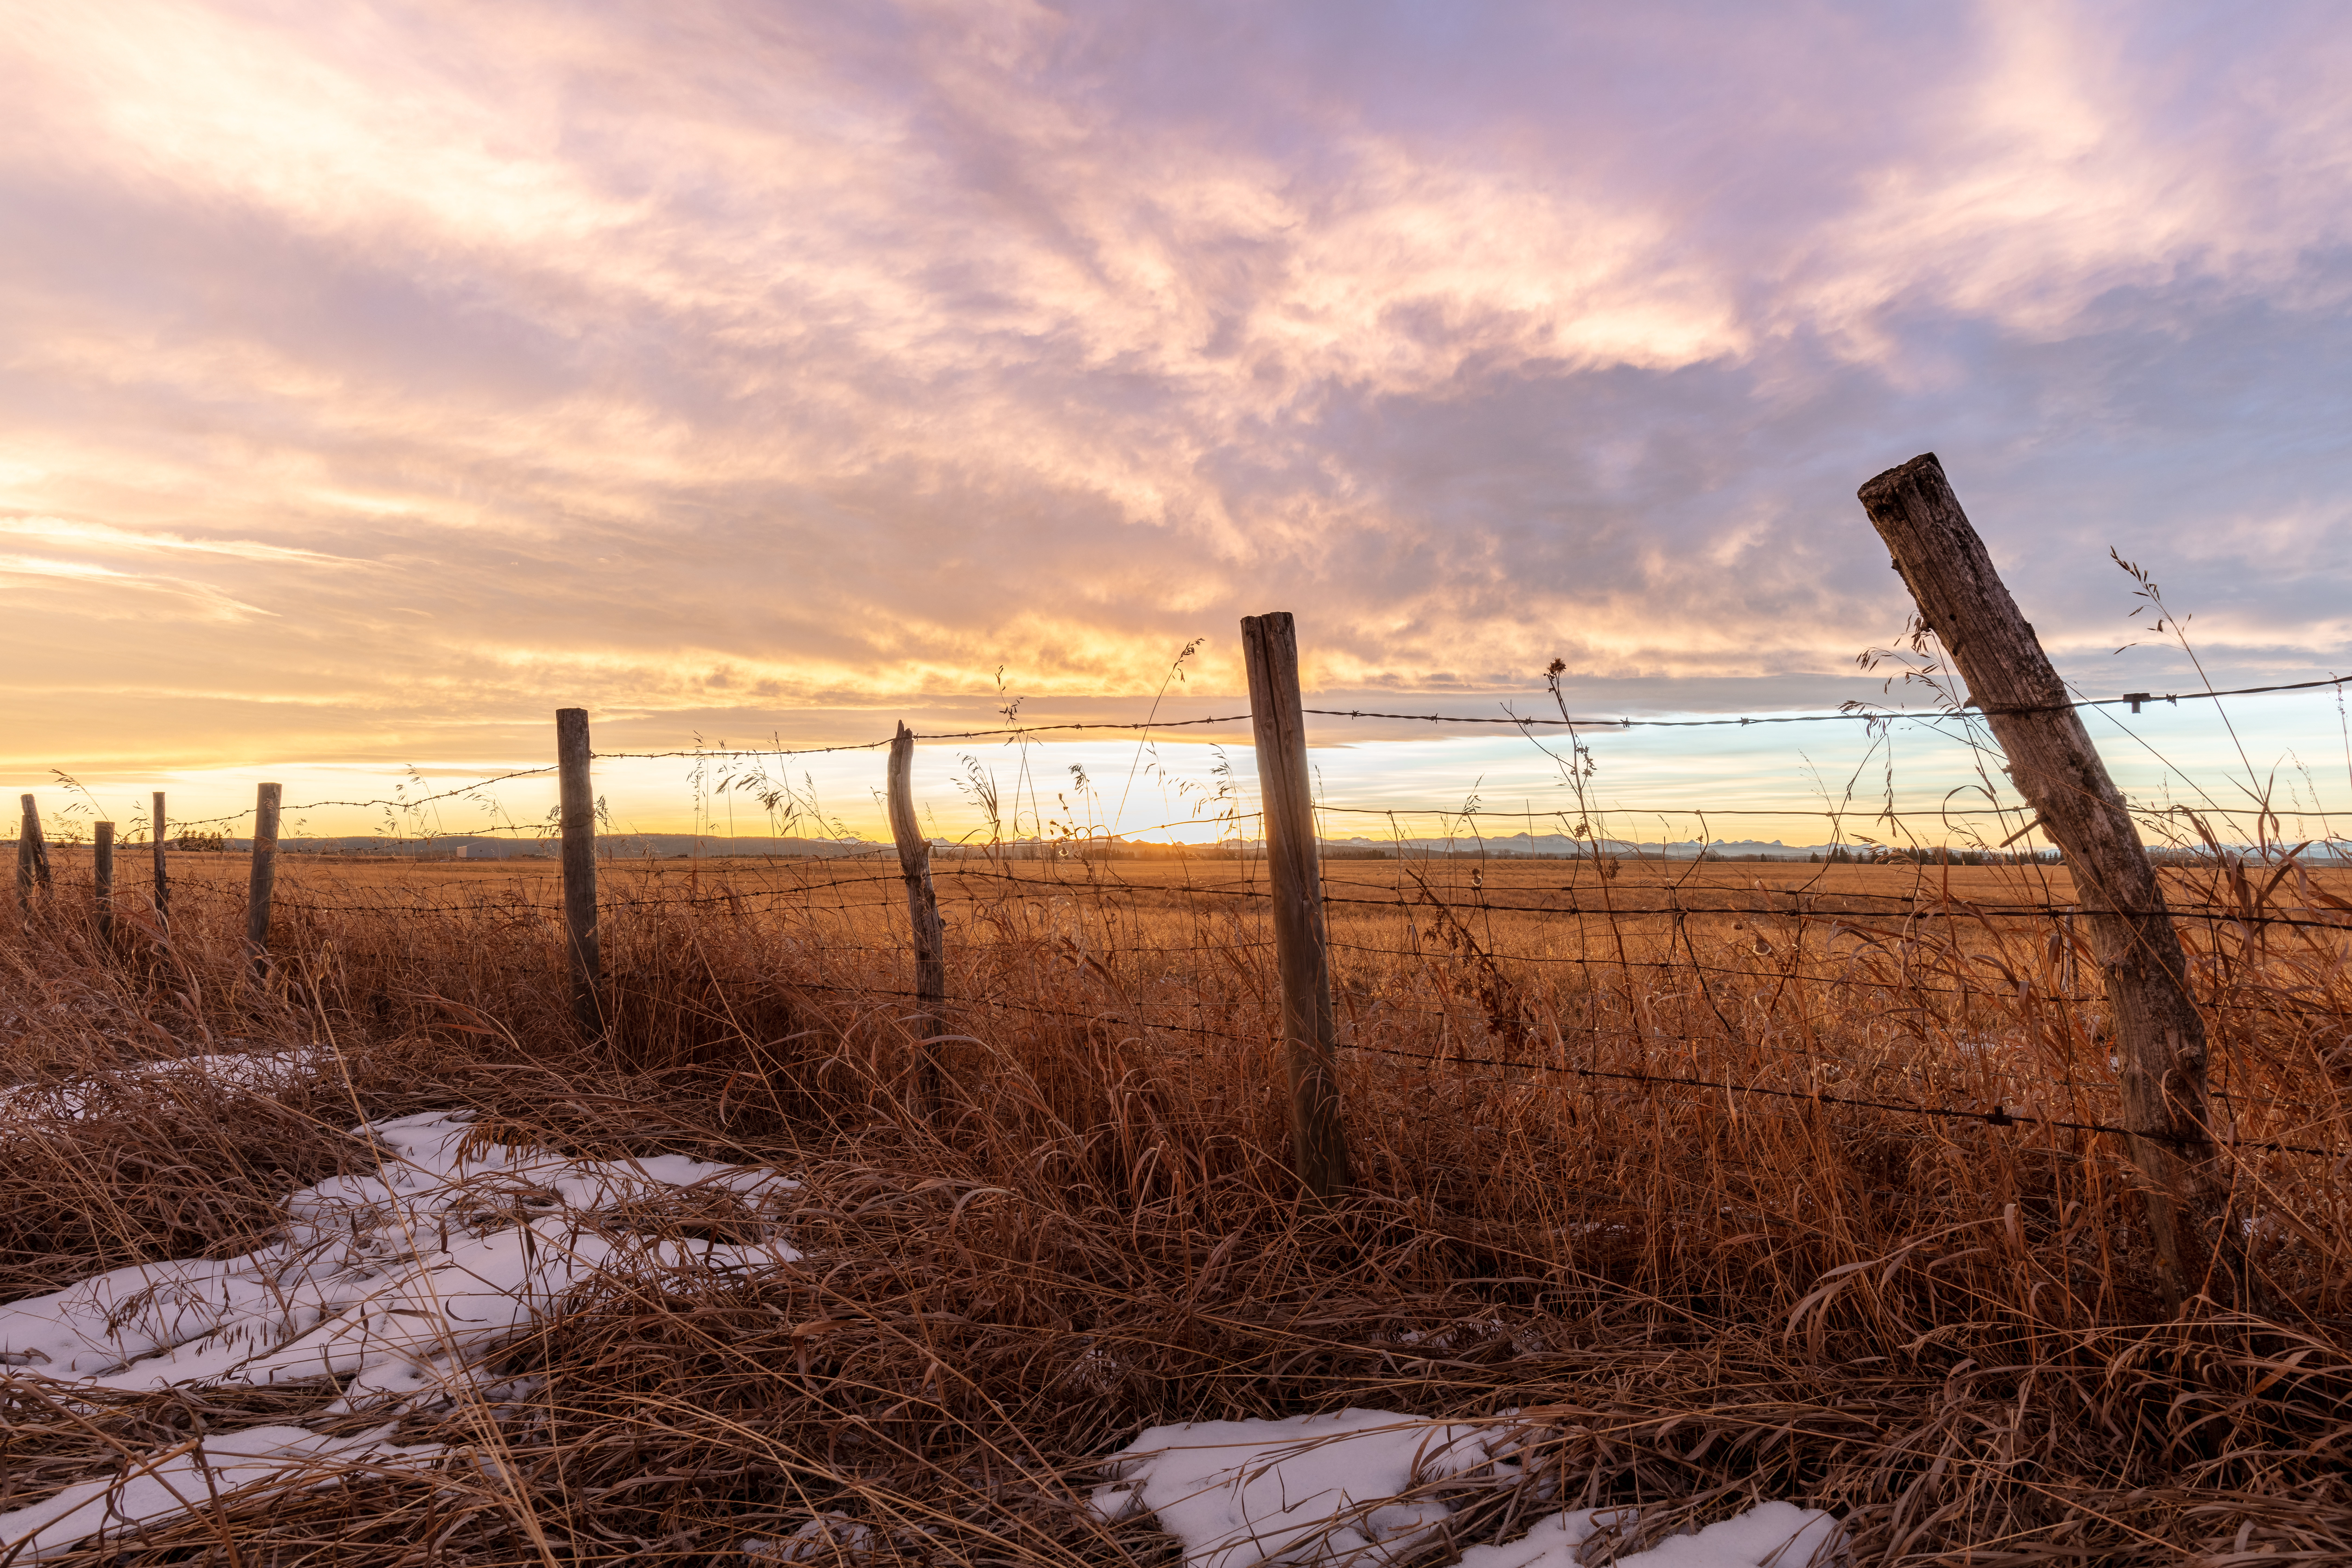 As the sun sets behind the Canadian Rockies, Alberta's big sky shows us all what she's made of